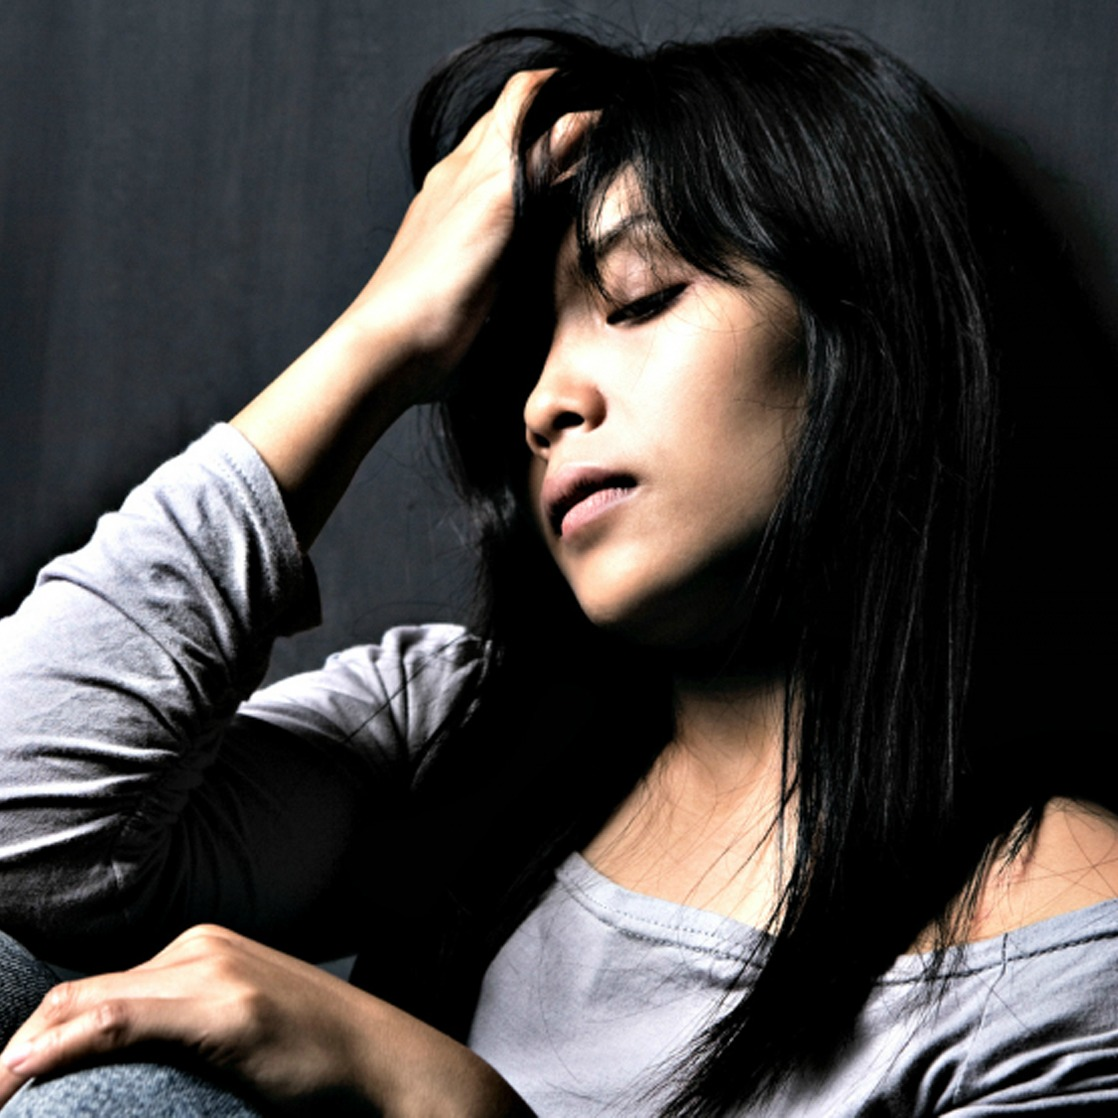 a stressed woman holds her hand to her forehead